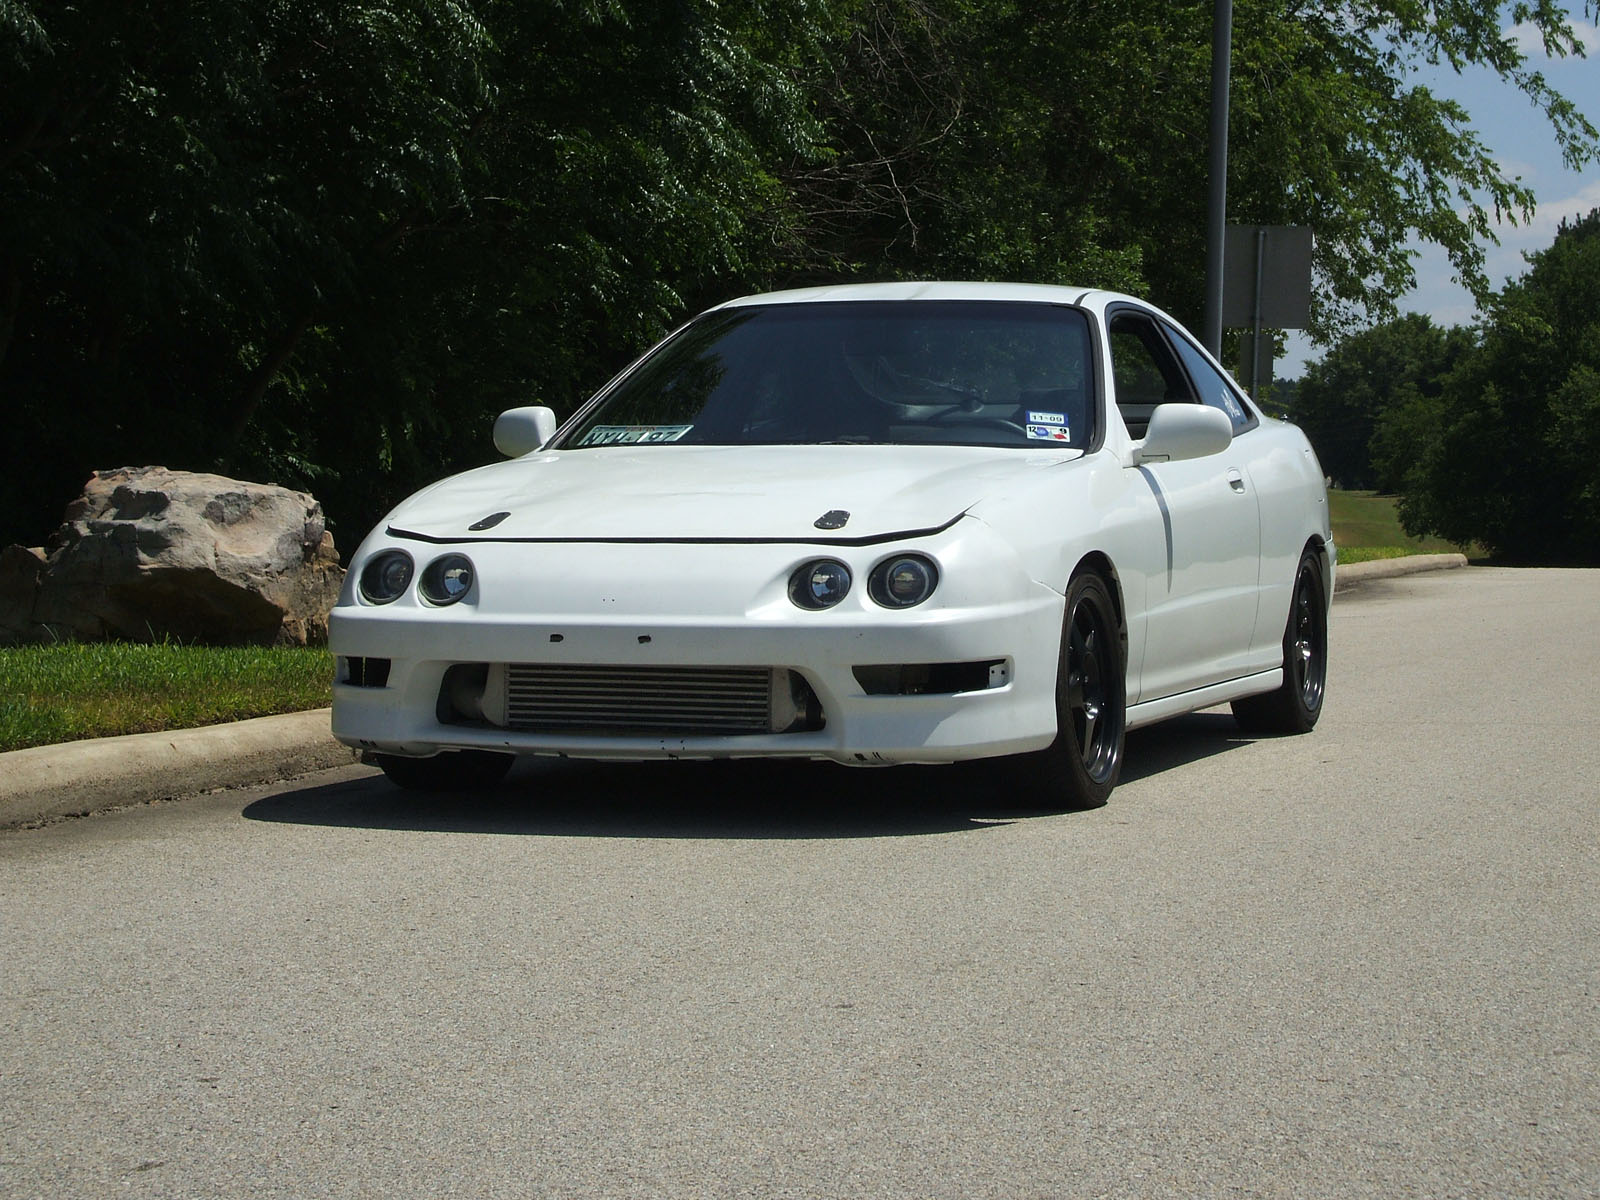 Integra Parts Car For Sale